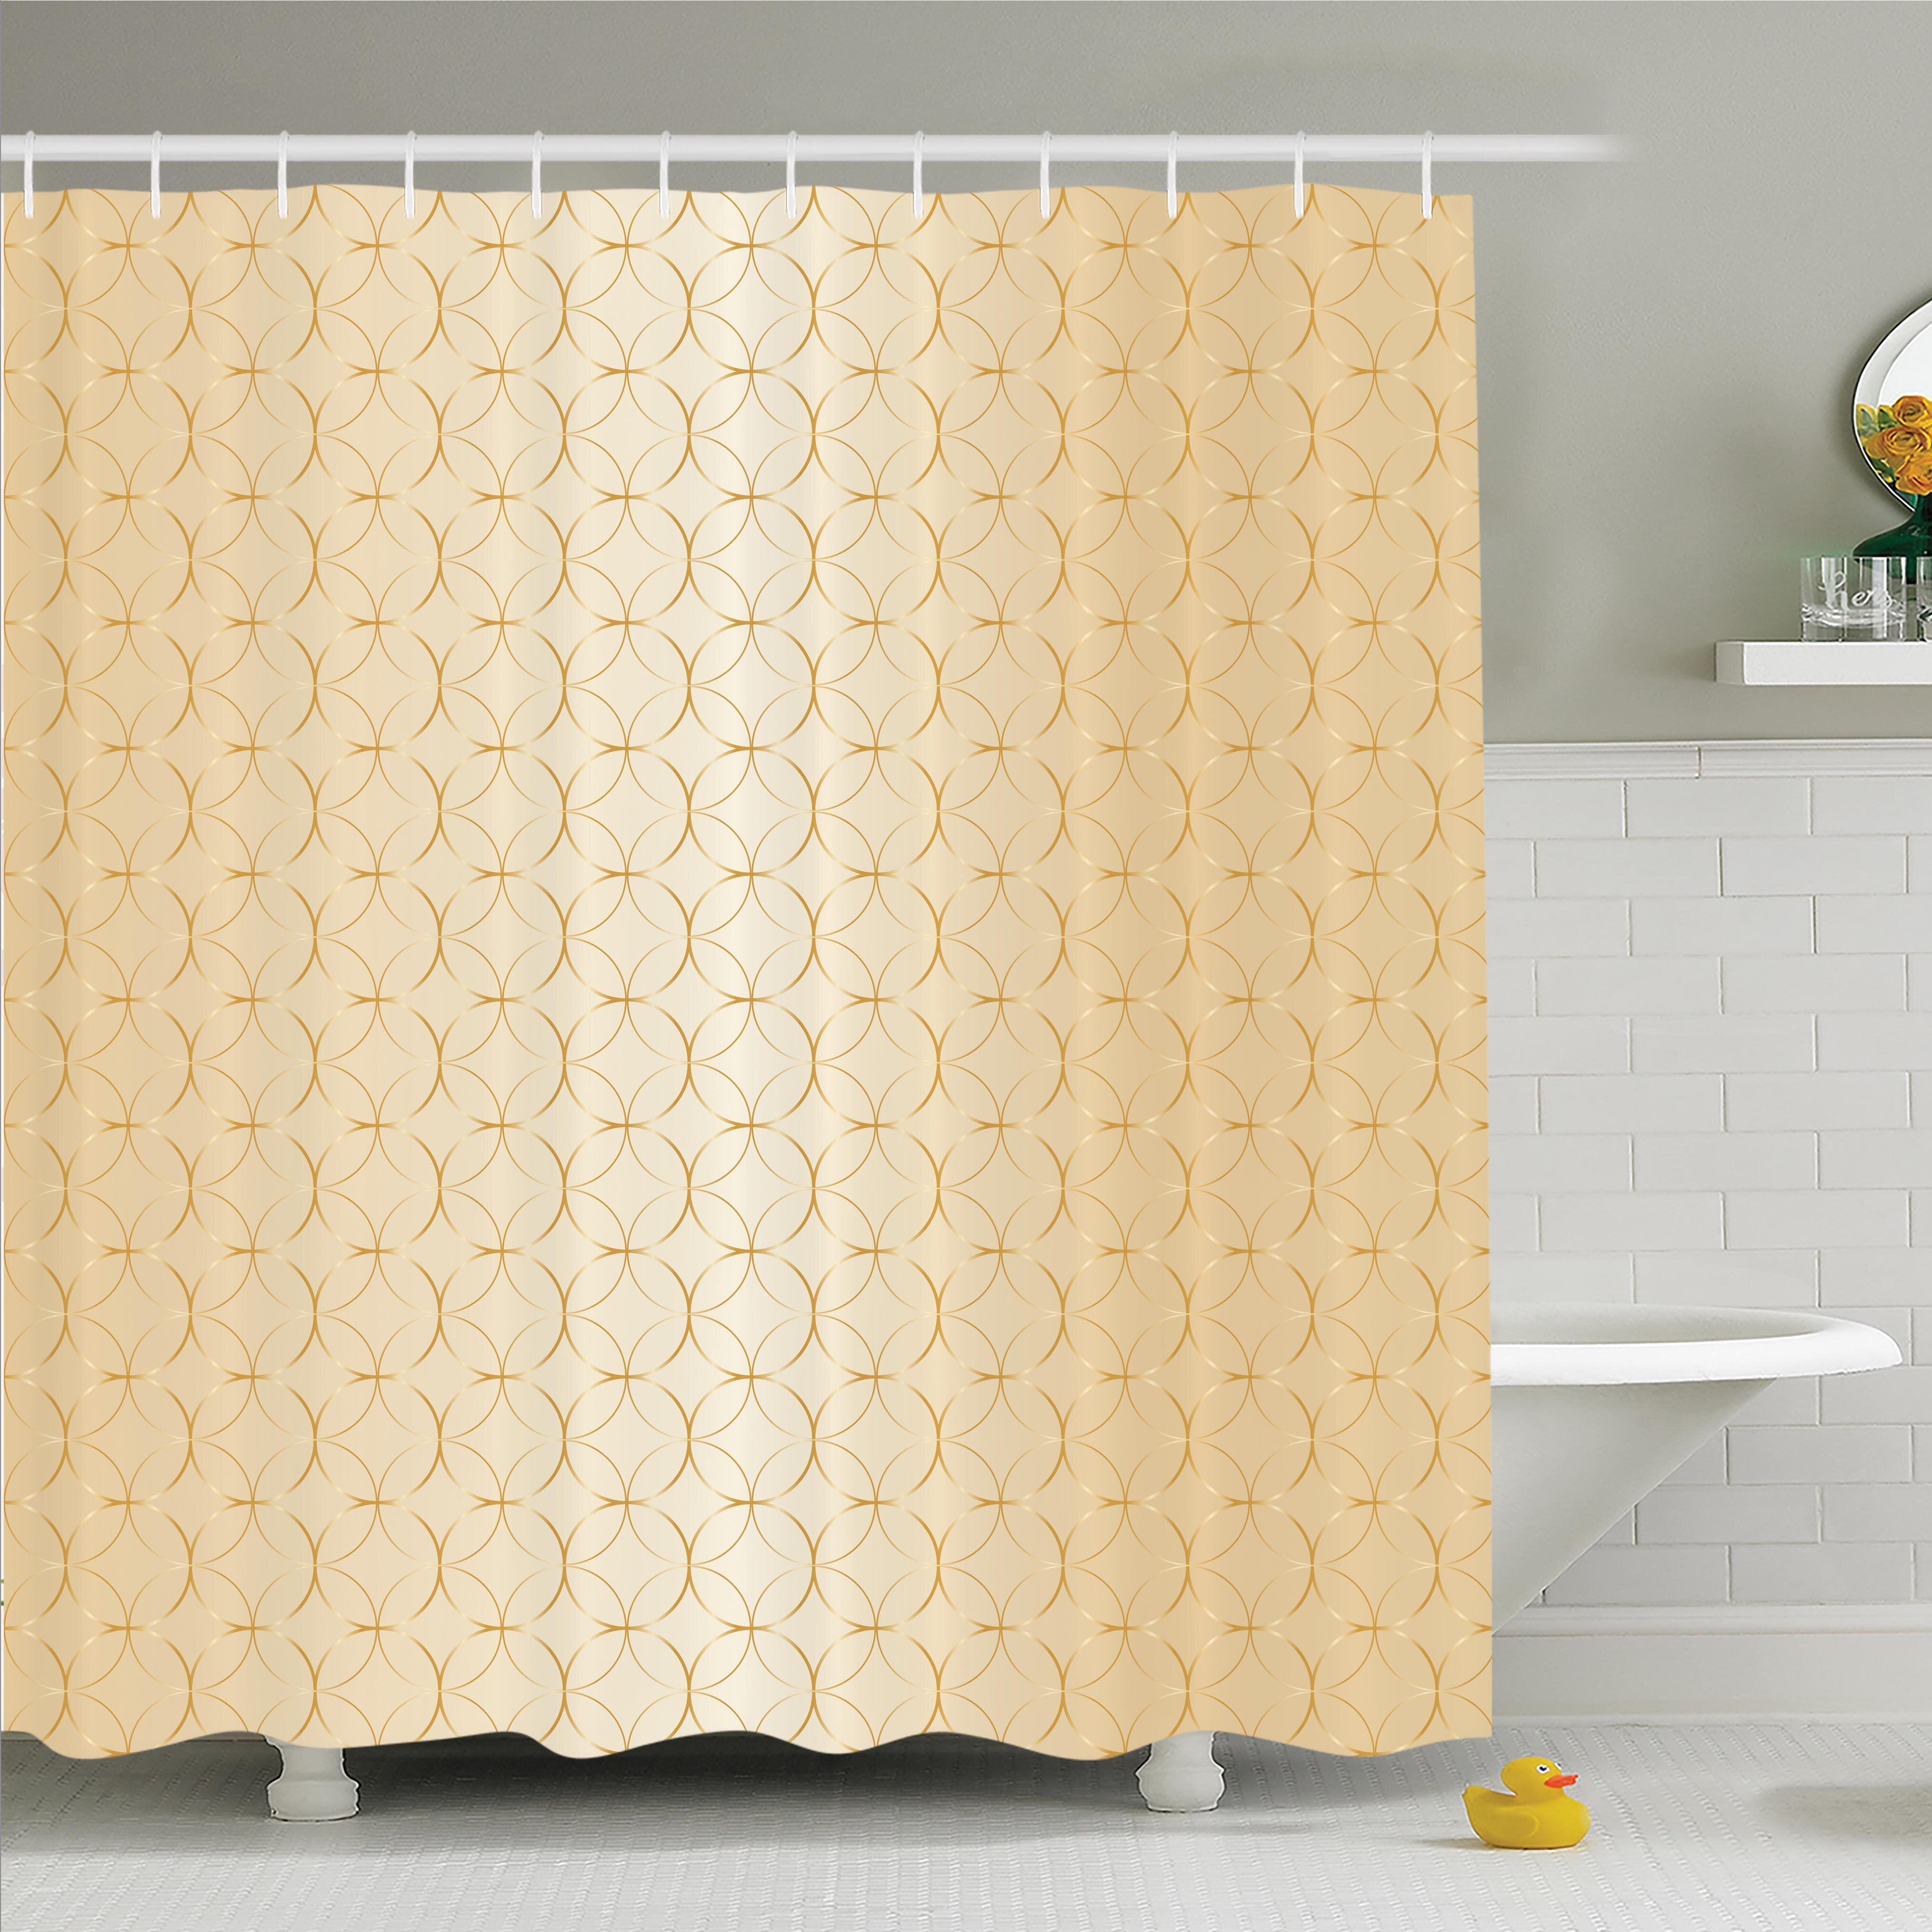 Ambesonne Geometric Shower Curtain Set